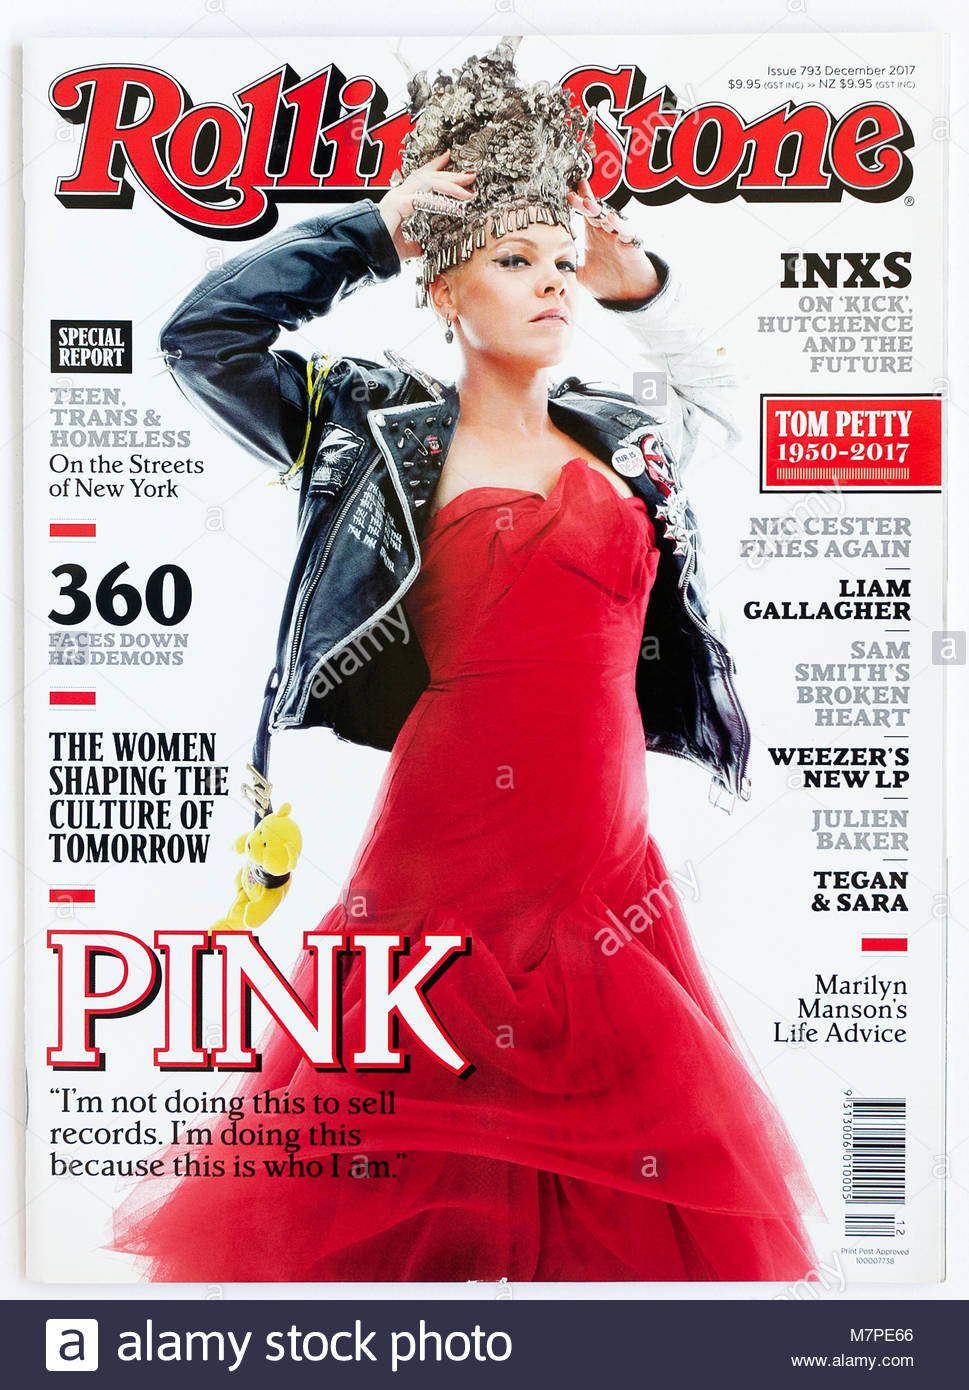 The cover of Rolling Stone magazine, issue 793, Pink - Stock Image